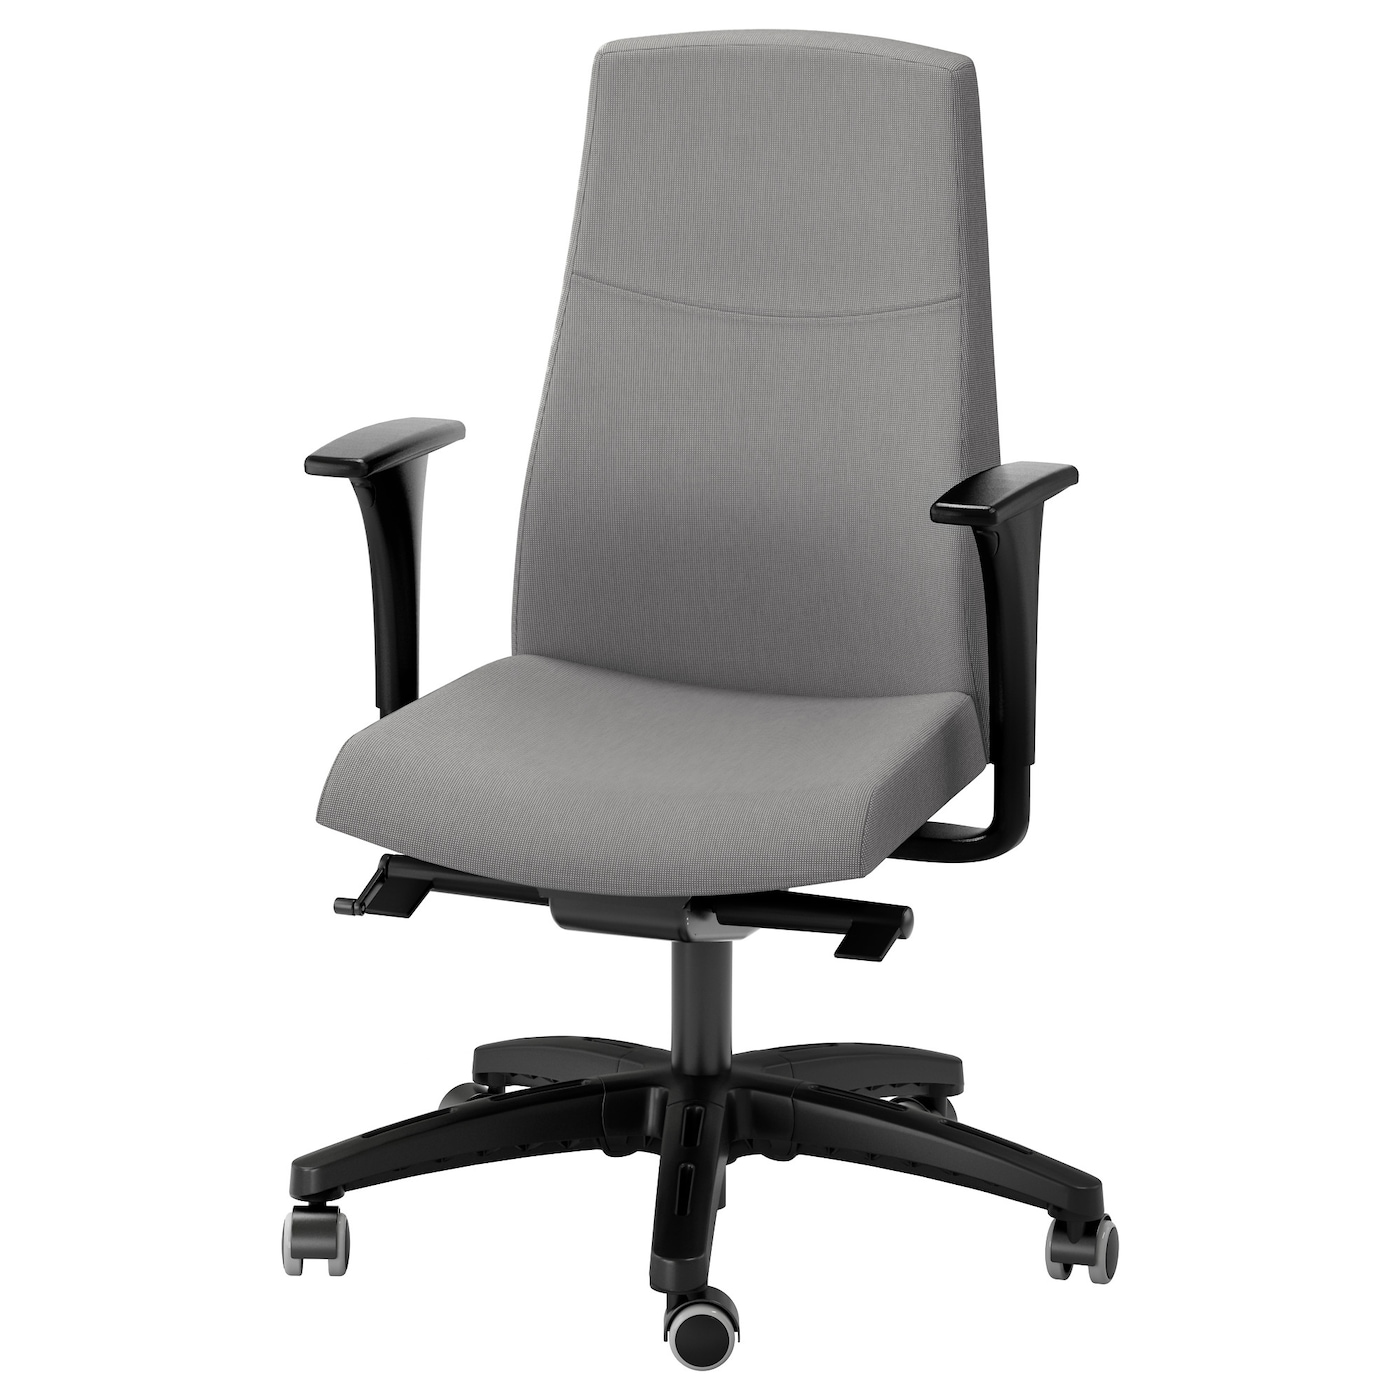 VOLMAR Swivel chair with armrests Grey IKEA